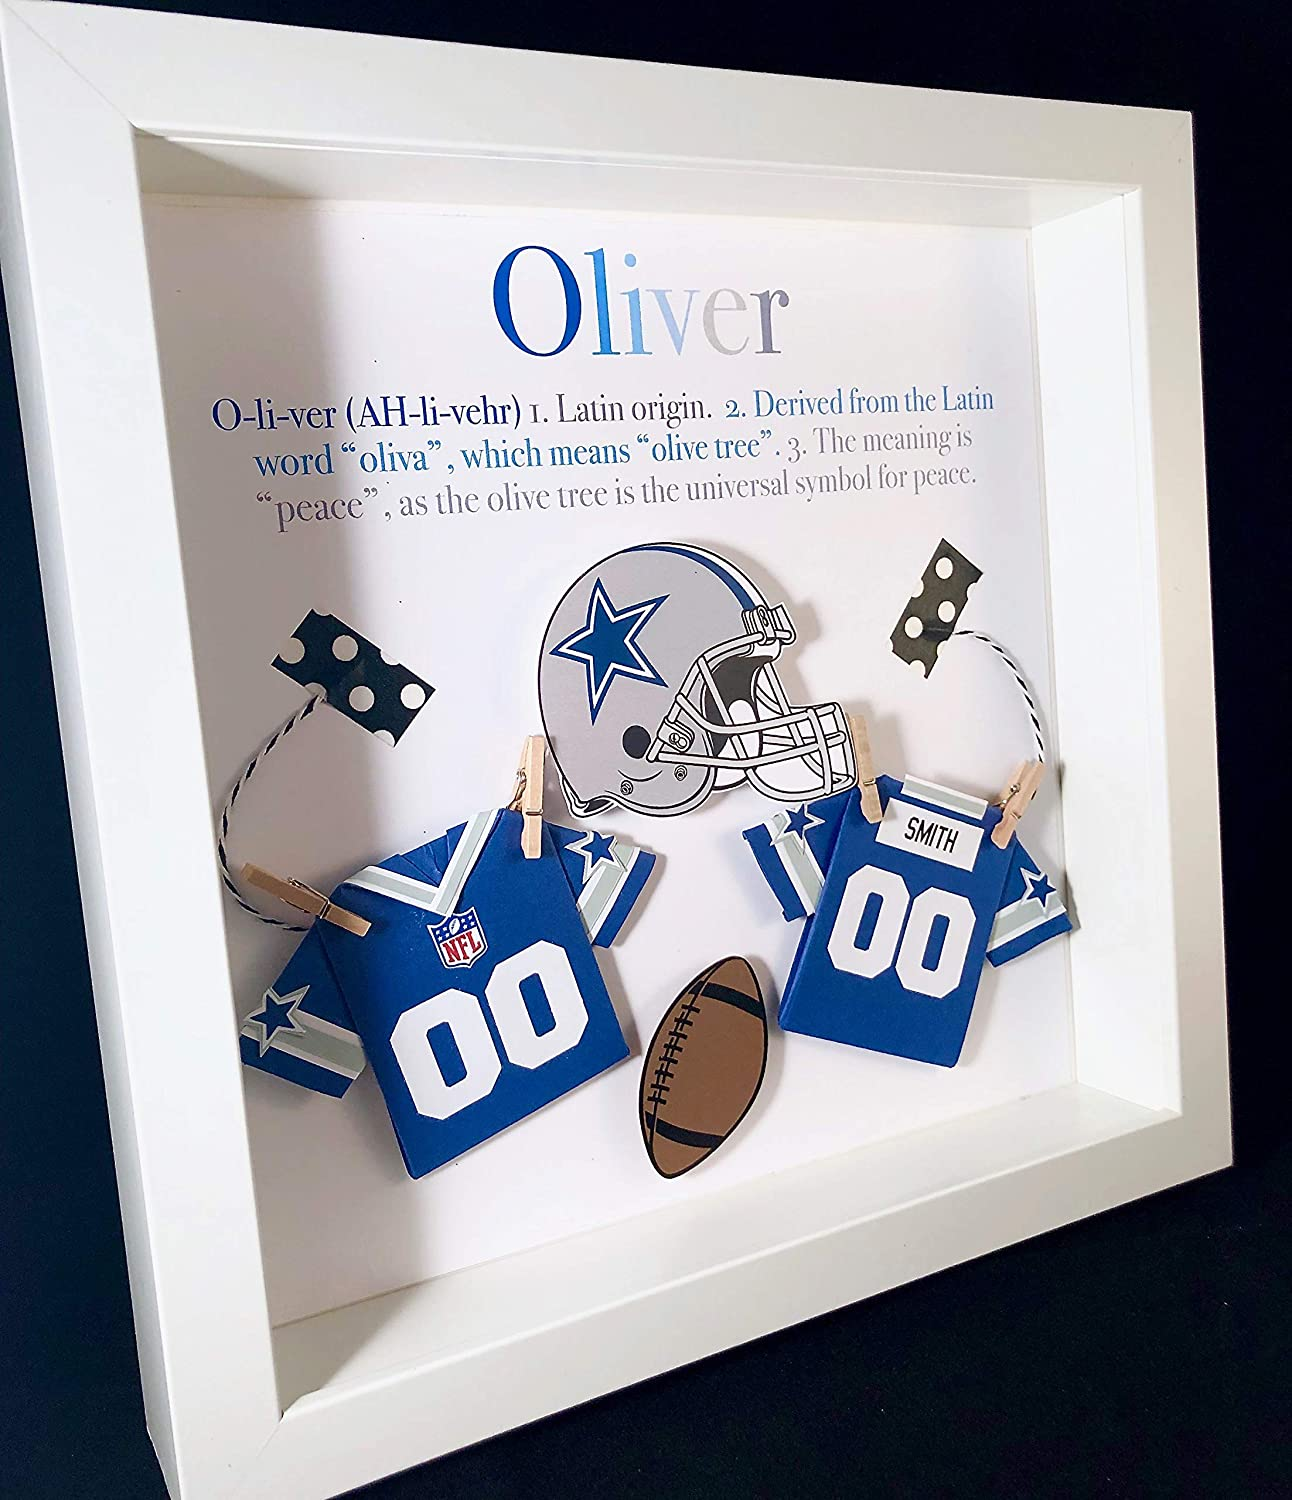 Amazon.com: Personalized Baby Boy Frame NFL Dallas Cowboys Football Gift  with Name, Origin and Meaning, NFL Cowboys Shirt, Nursery Decor Wall Art:  Handmade